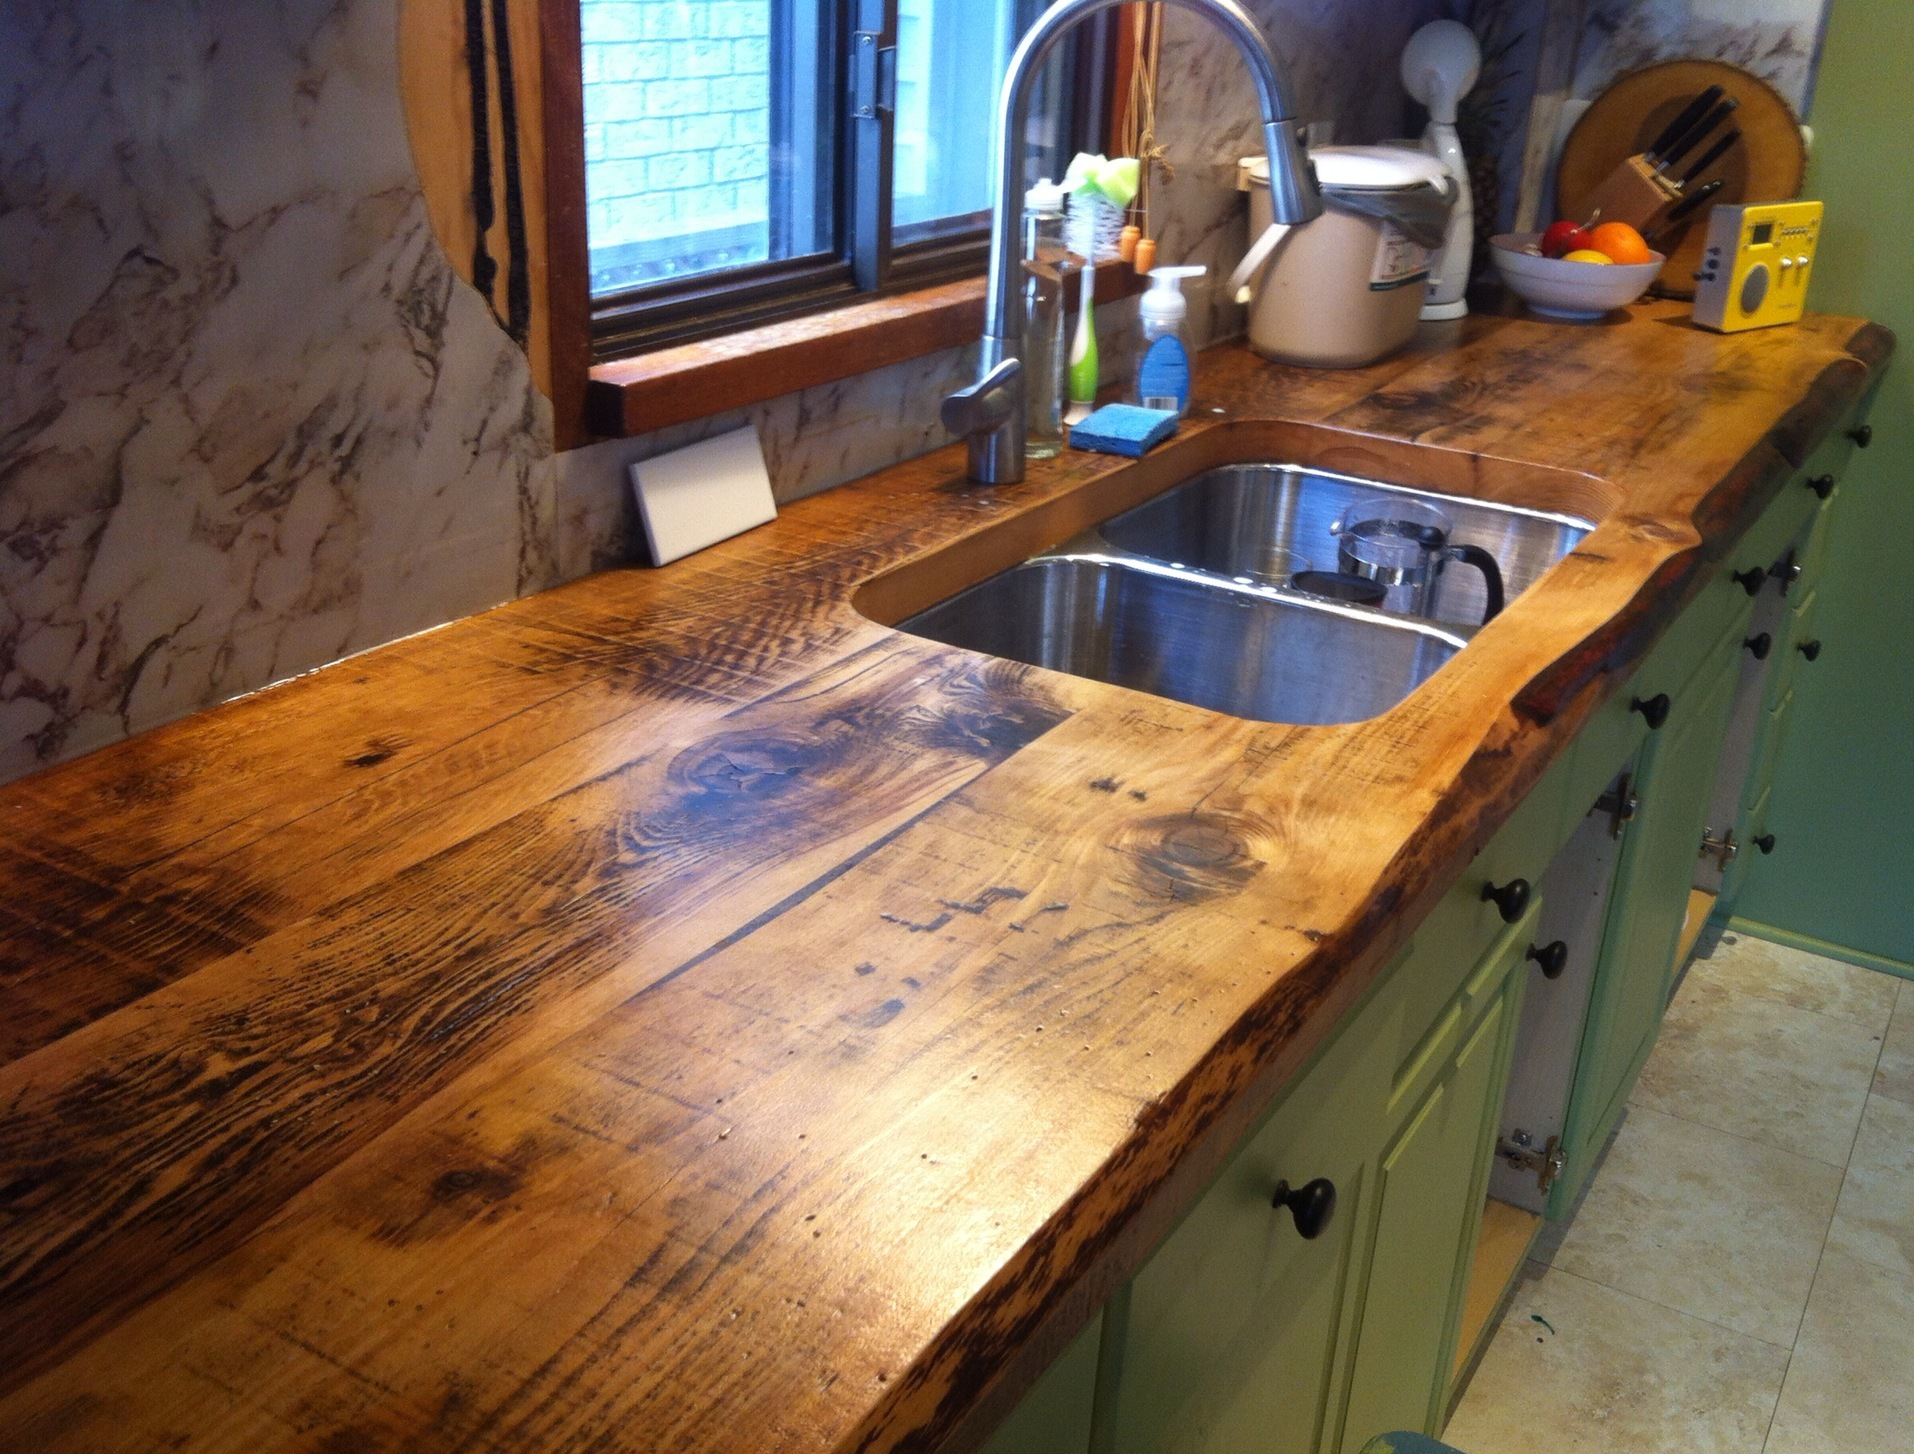 Wooden-countertop-with-a-rough-rustic-style-